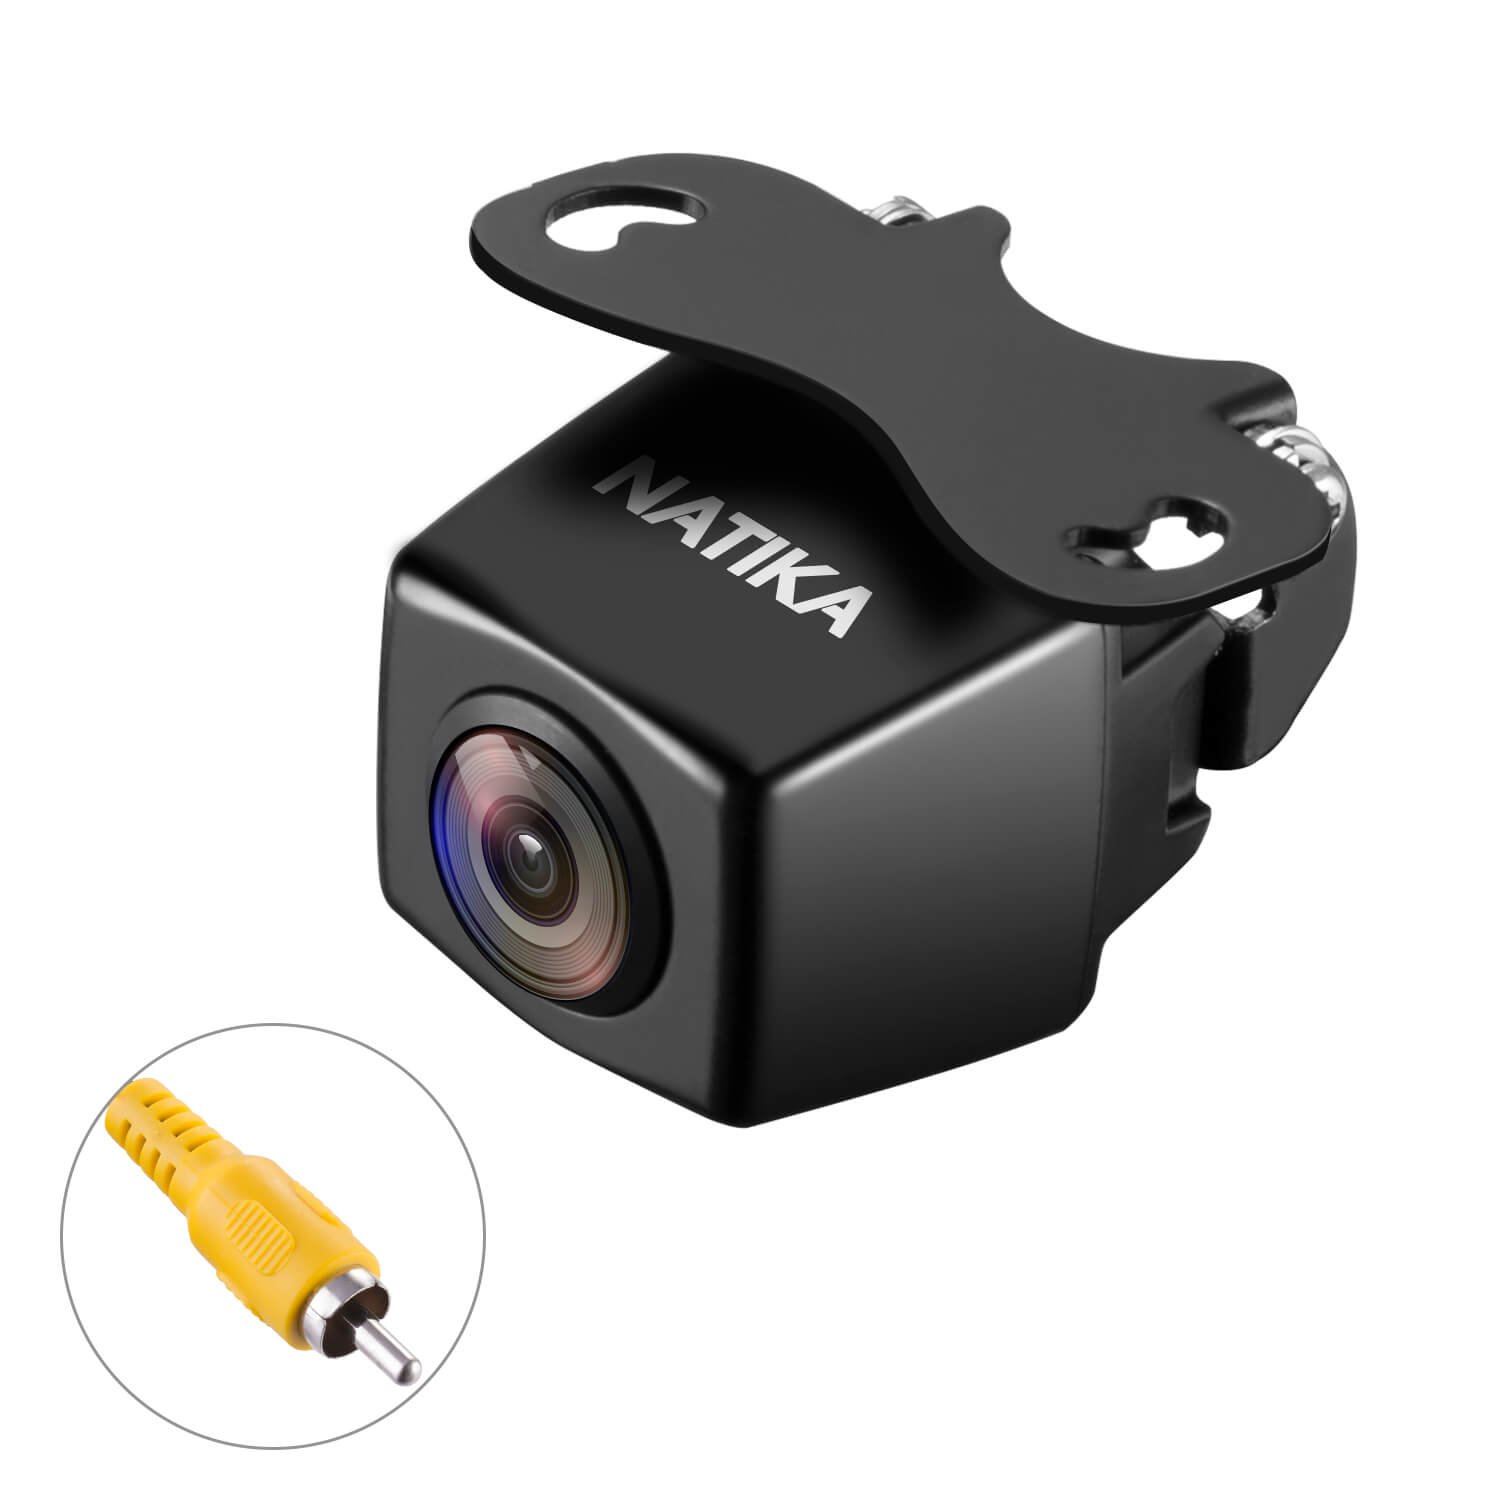 Upgrade Versionnatika 720p Backup Front Side View Jeep Wrangler Factory Radio Waterproof Starlight Night Vision High Definition And Super Wide Angle Reverse Rear Camera For Cars Trucks Suv Rv Van Car Electronics